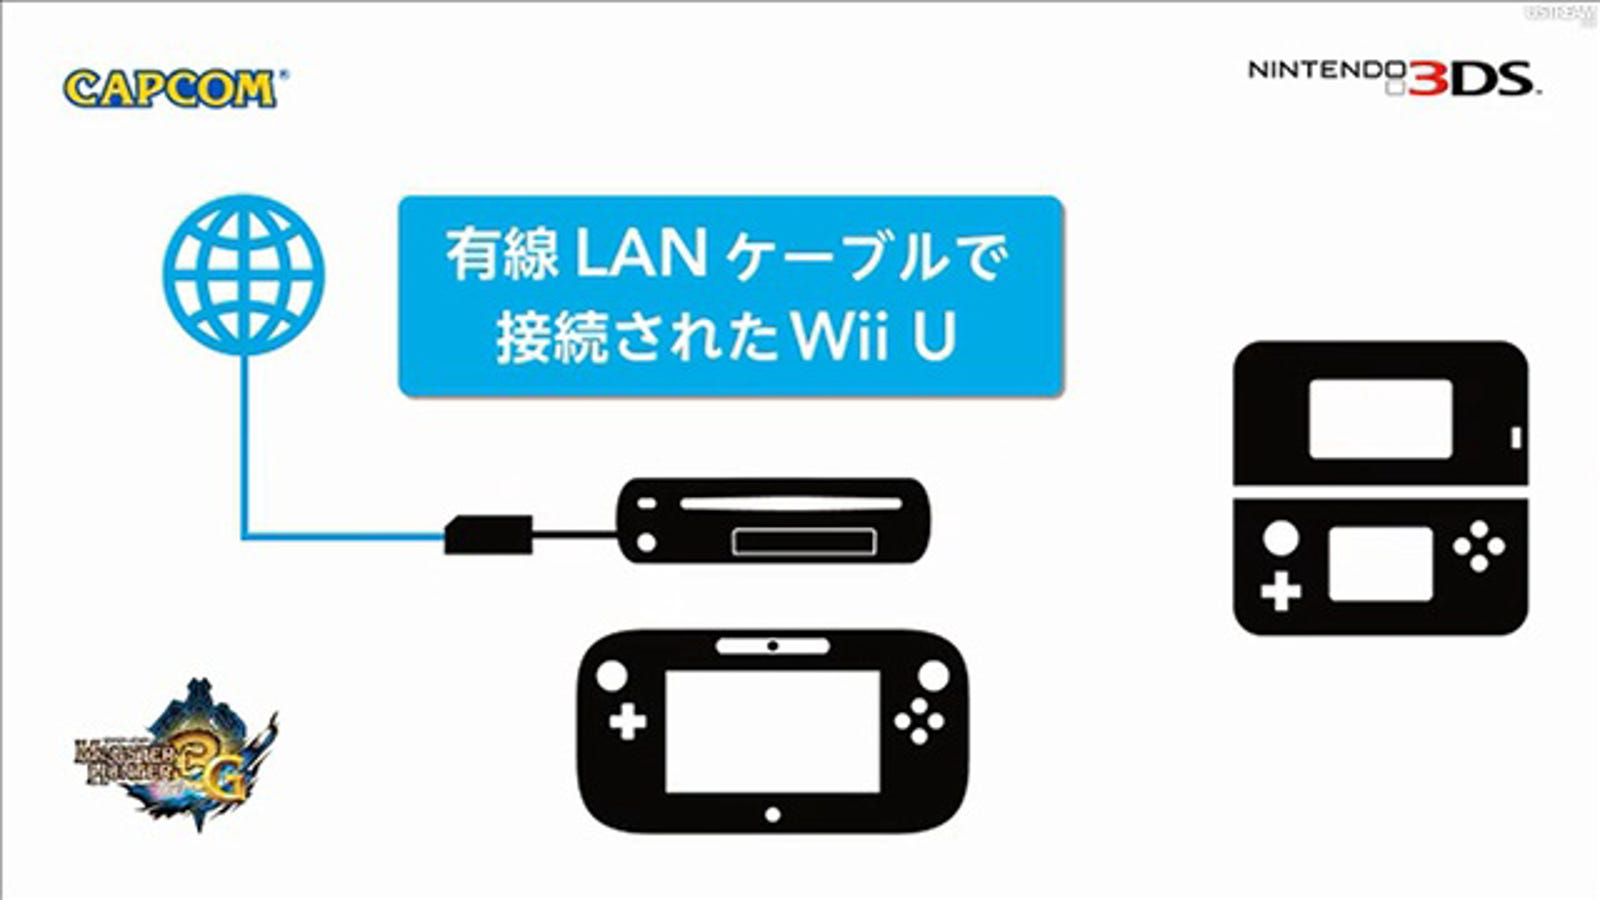 This New App Turns Your Wii U Into A Network Router For Your 3DS ...